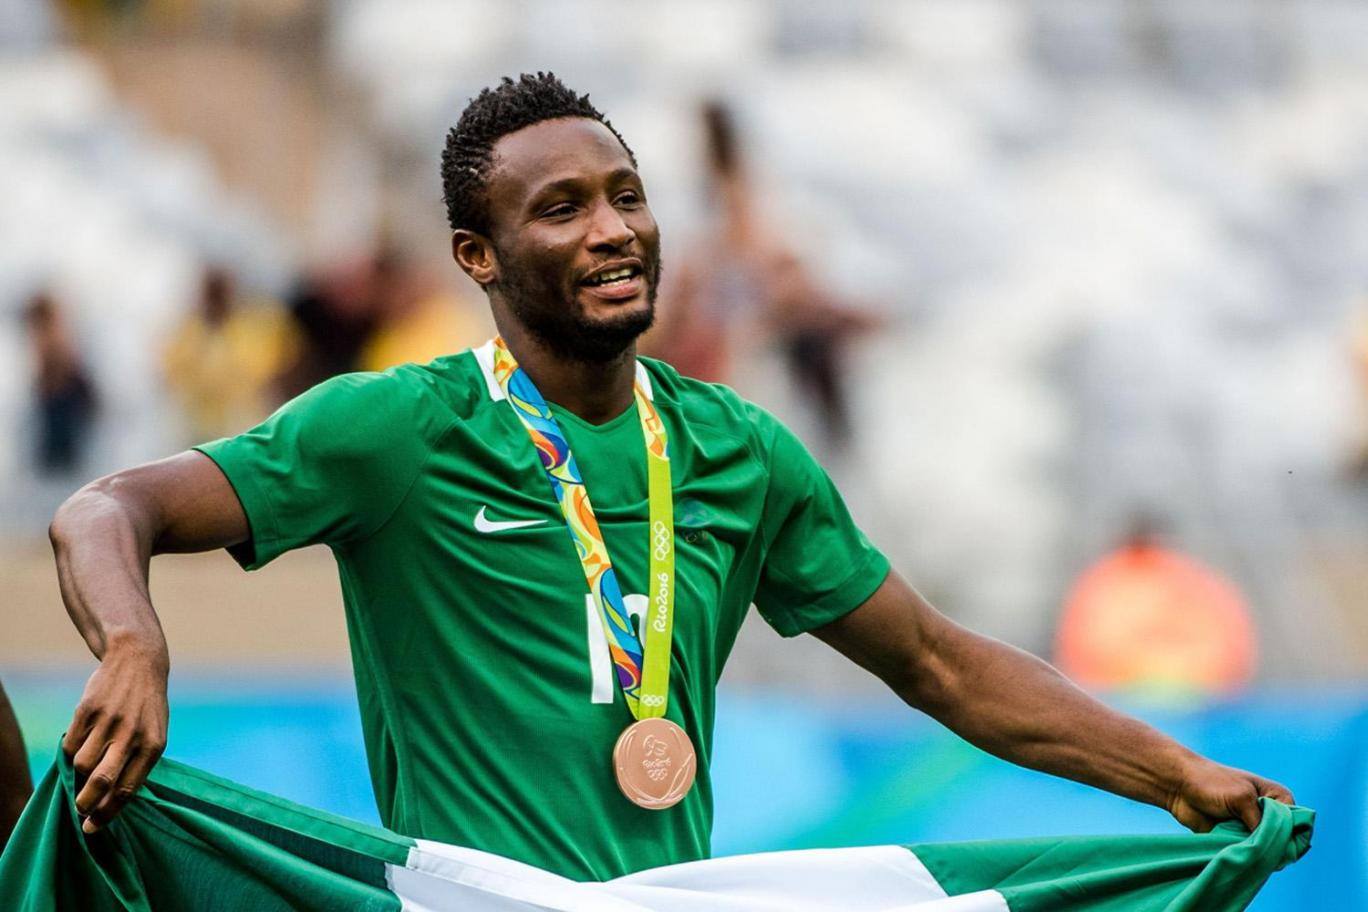 Ikhana: Mikel Punished For Olympics, Should Play For Conte's Chelsea